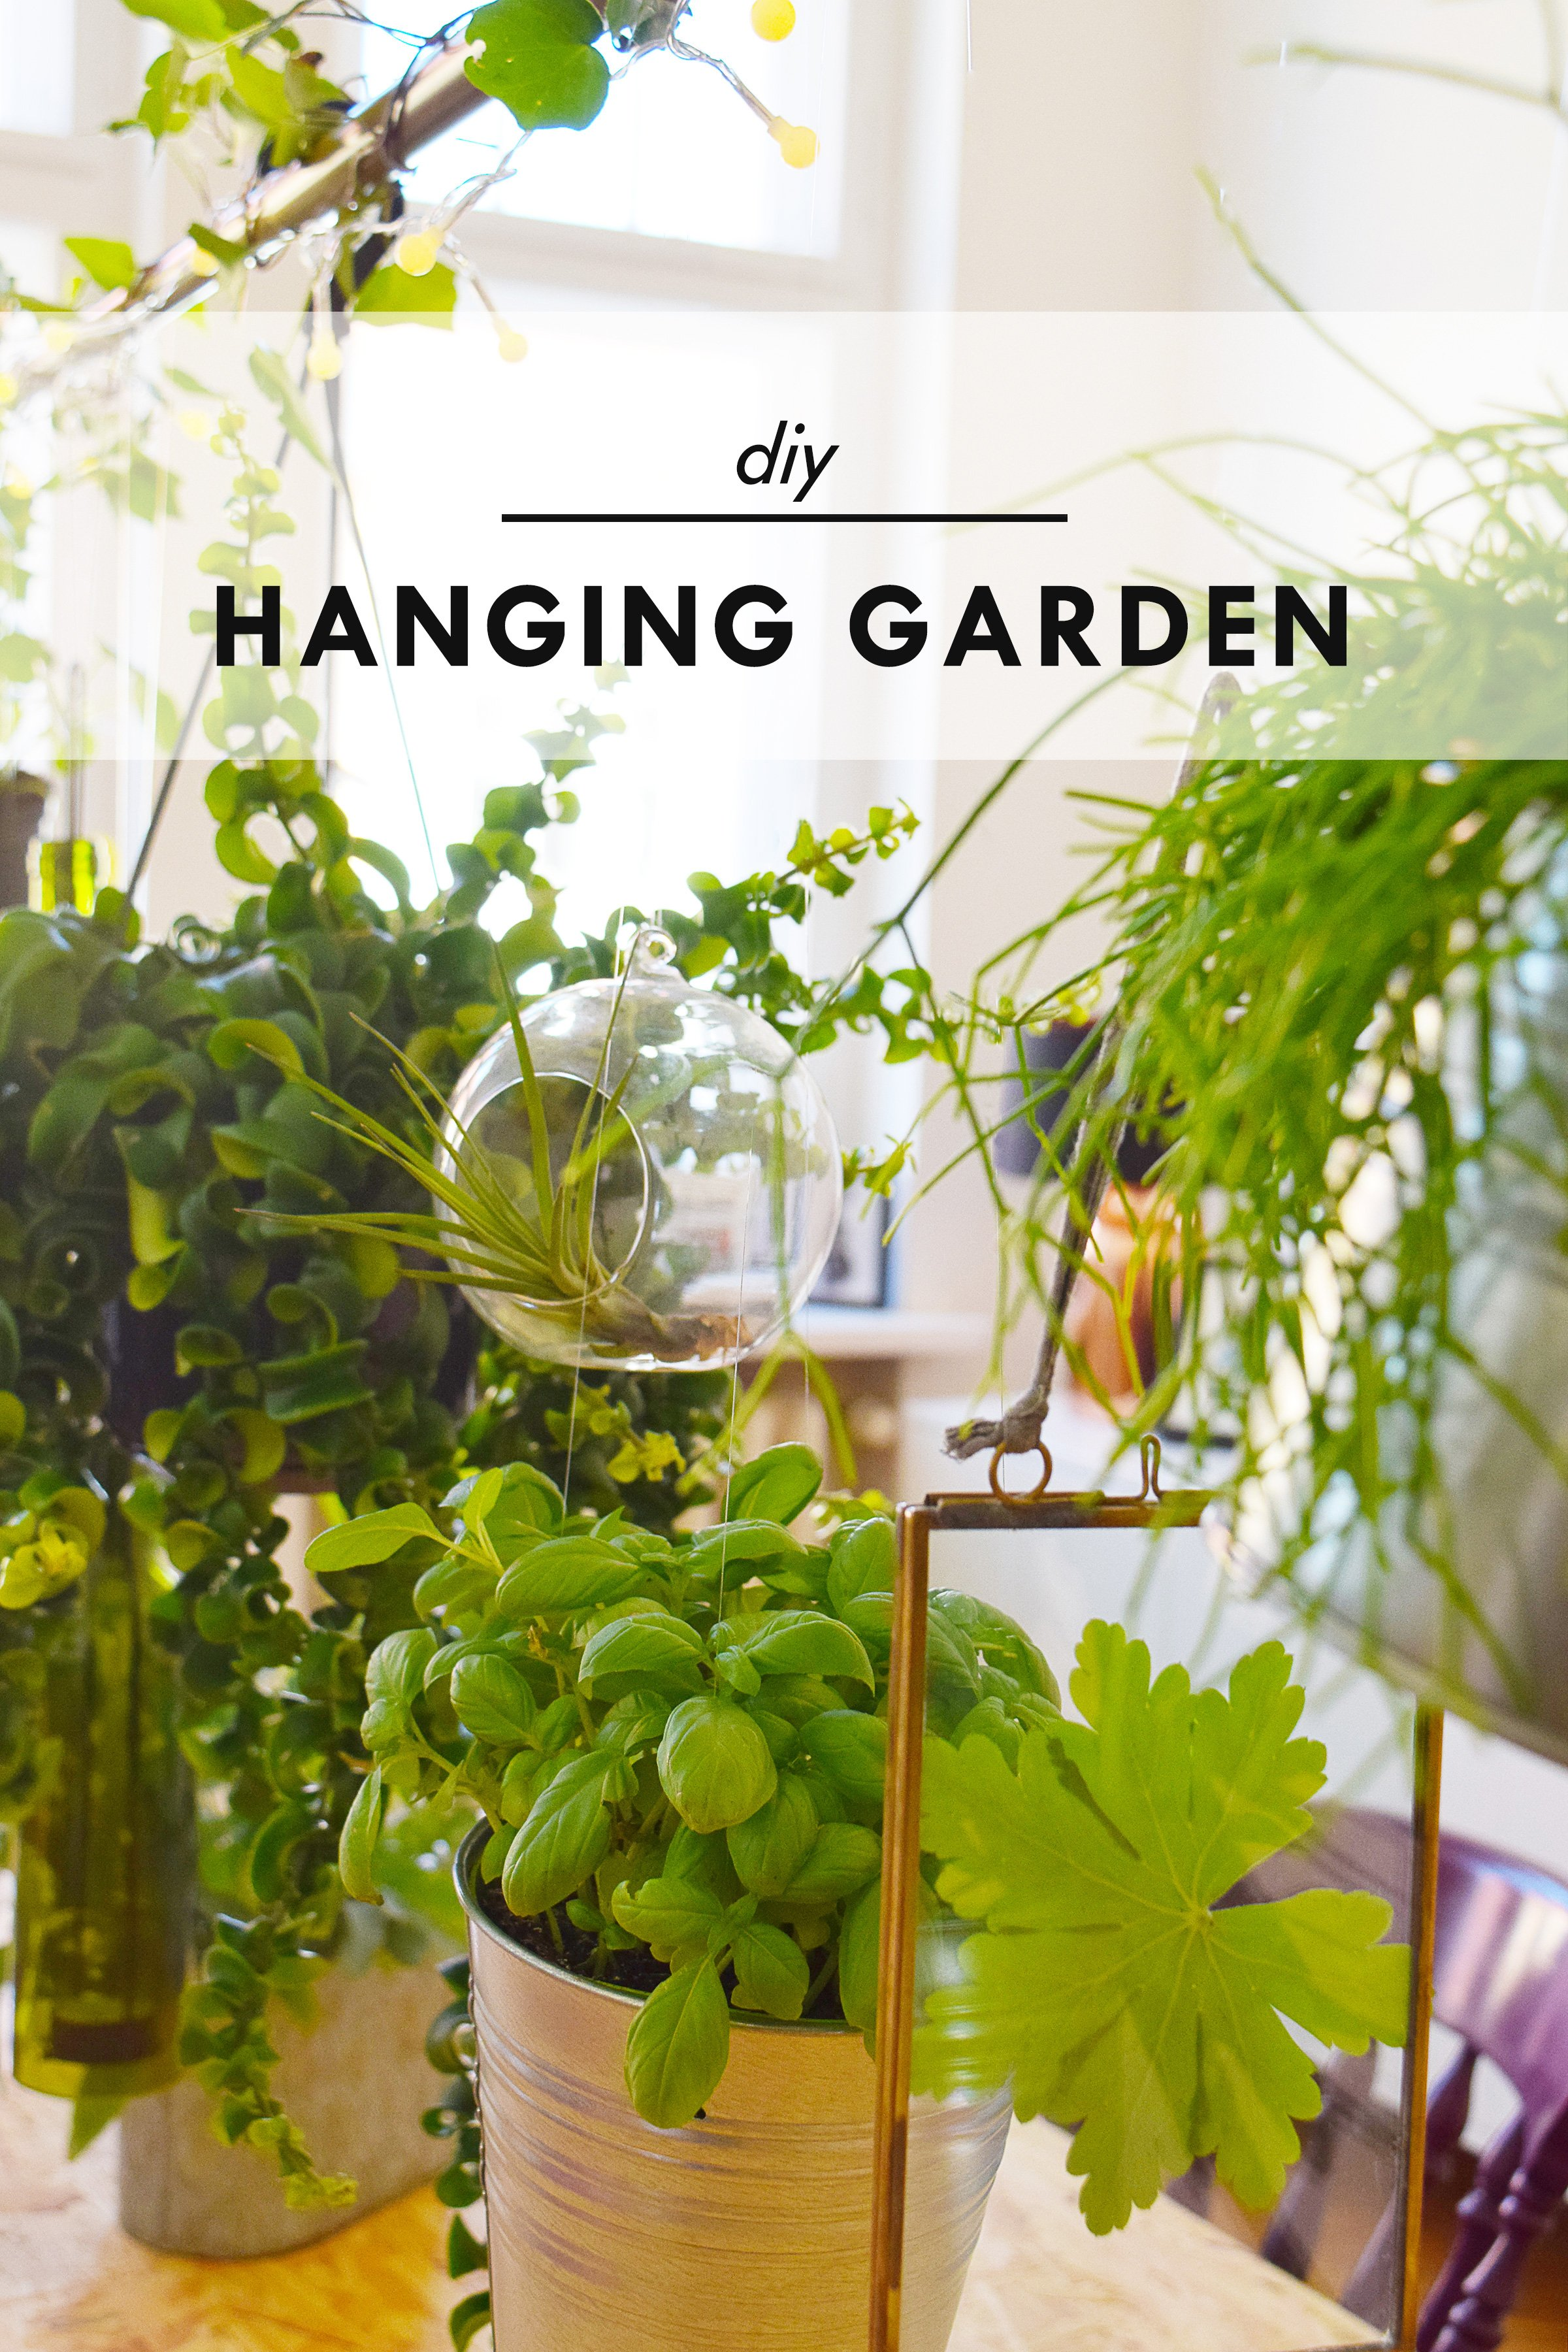 DIY Hanging Garden - Build Your Own Hanging Garden And Enjoy The Benefits Of Houseplants In Your Home - Little House On The Corner